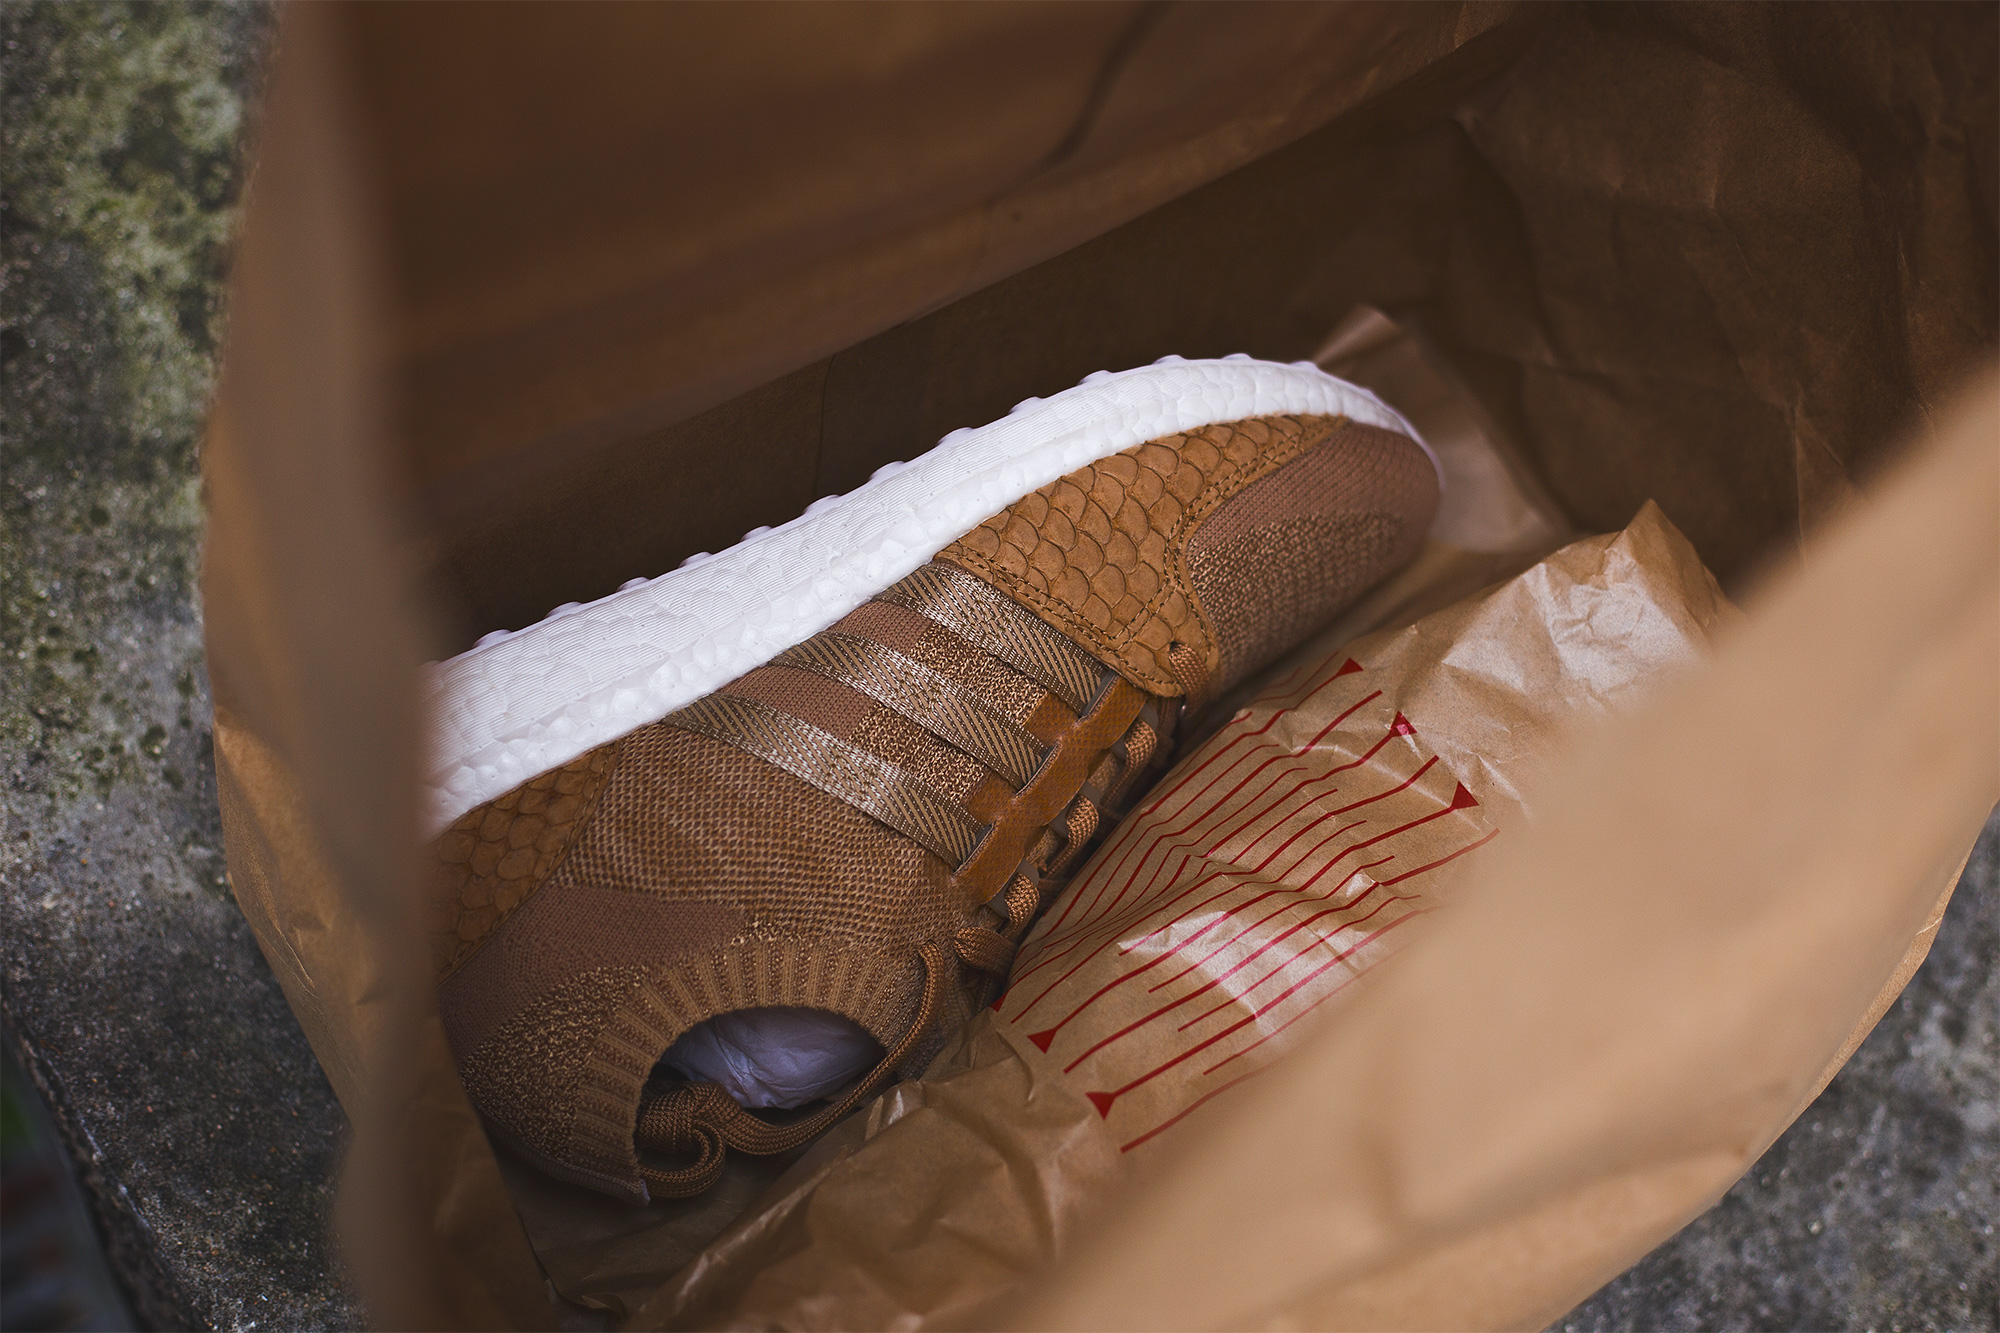 new product 67c69 1a3f5 adidas EQT Support Ultra PK King Push. SupcolSupcol. 219 €. DB0181. Pusha  ...